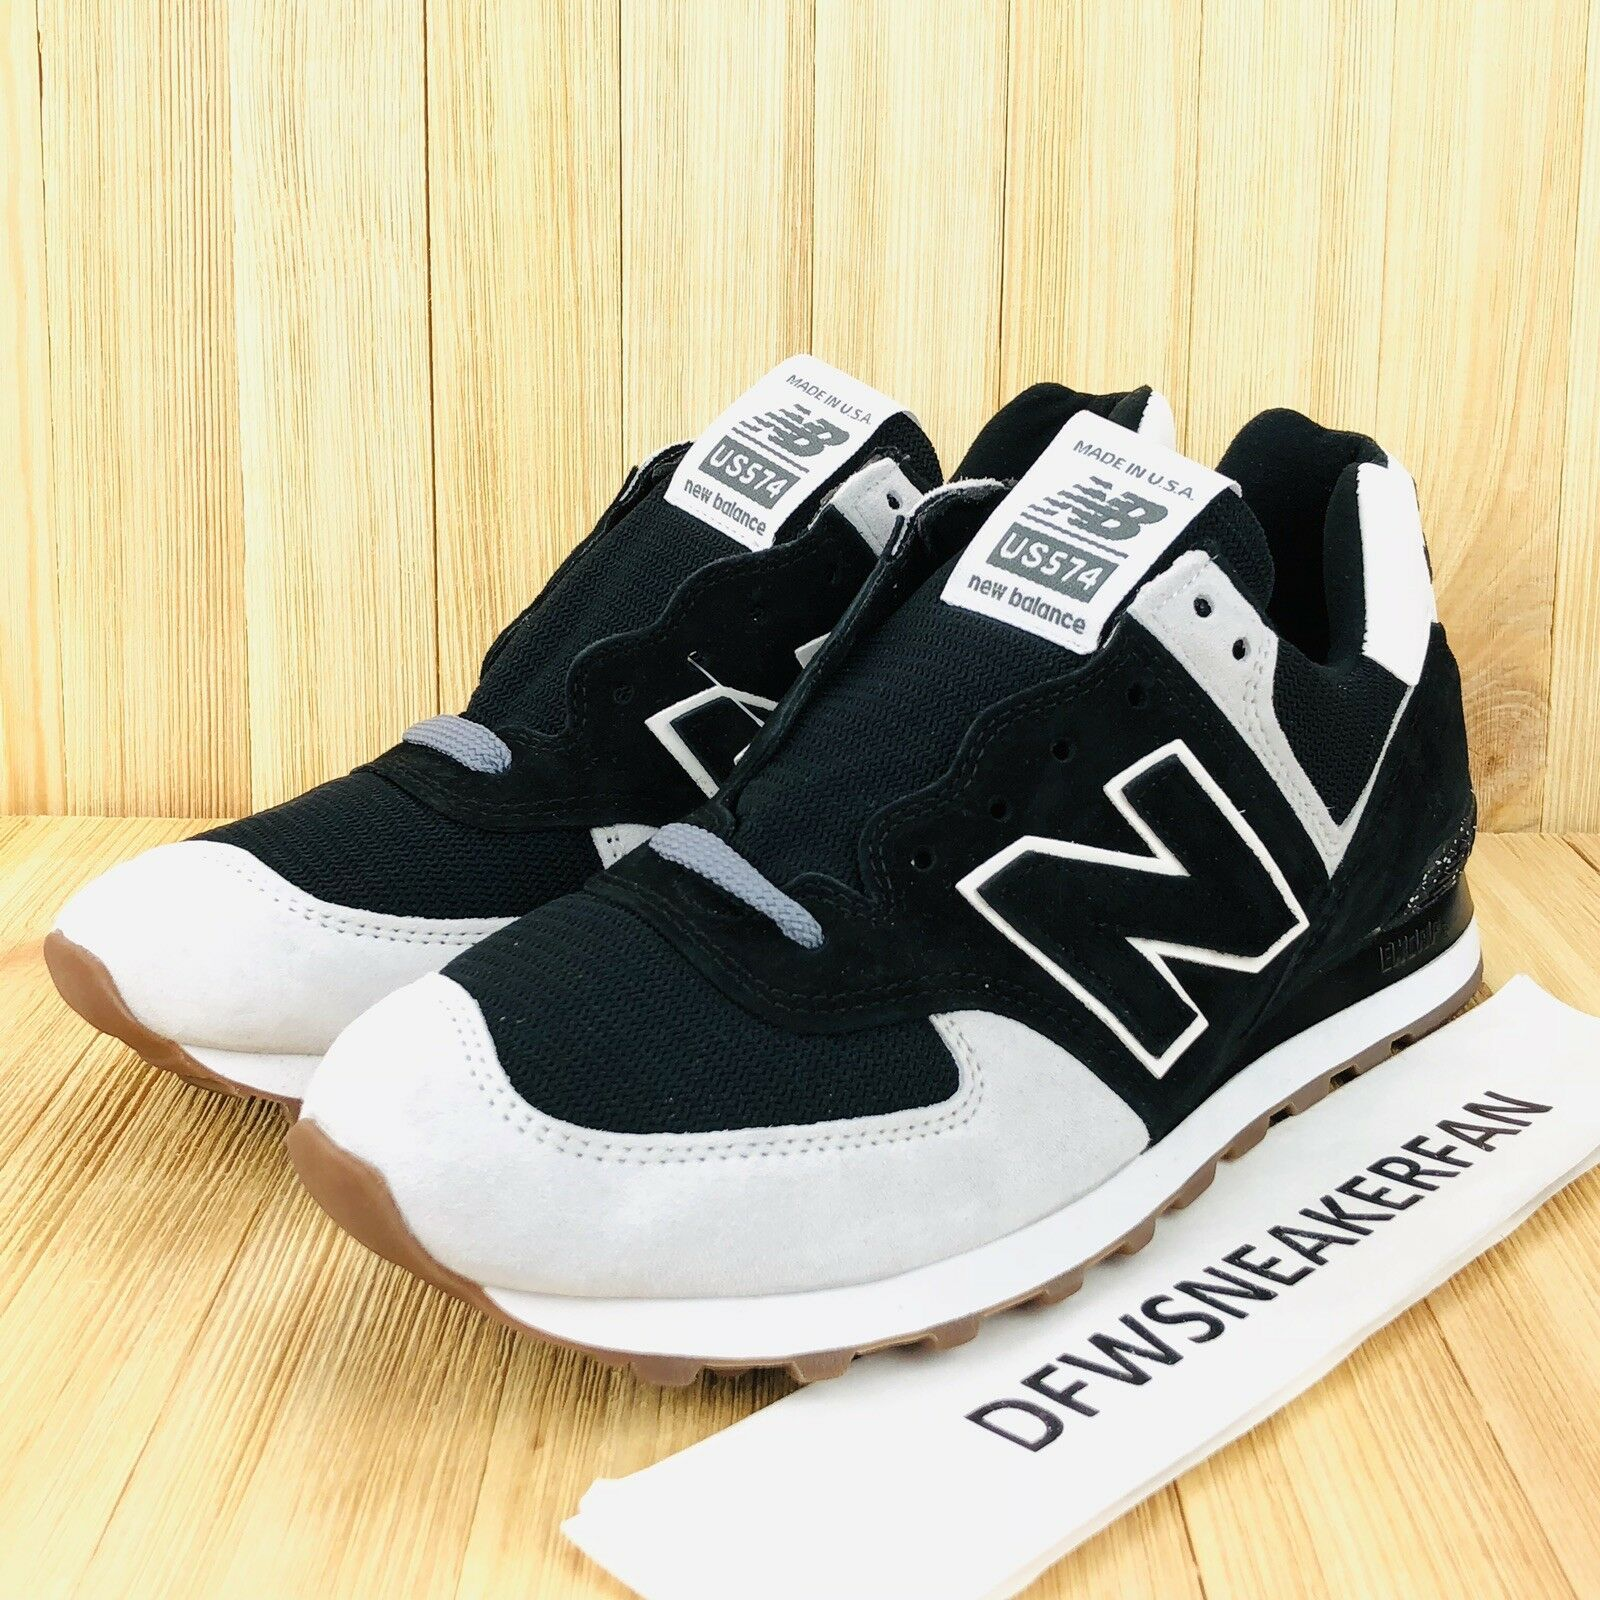 New Balance 574 Mens 8.5 Athletic shoes Suede Black US574CM2 MADE IN USA